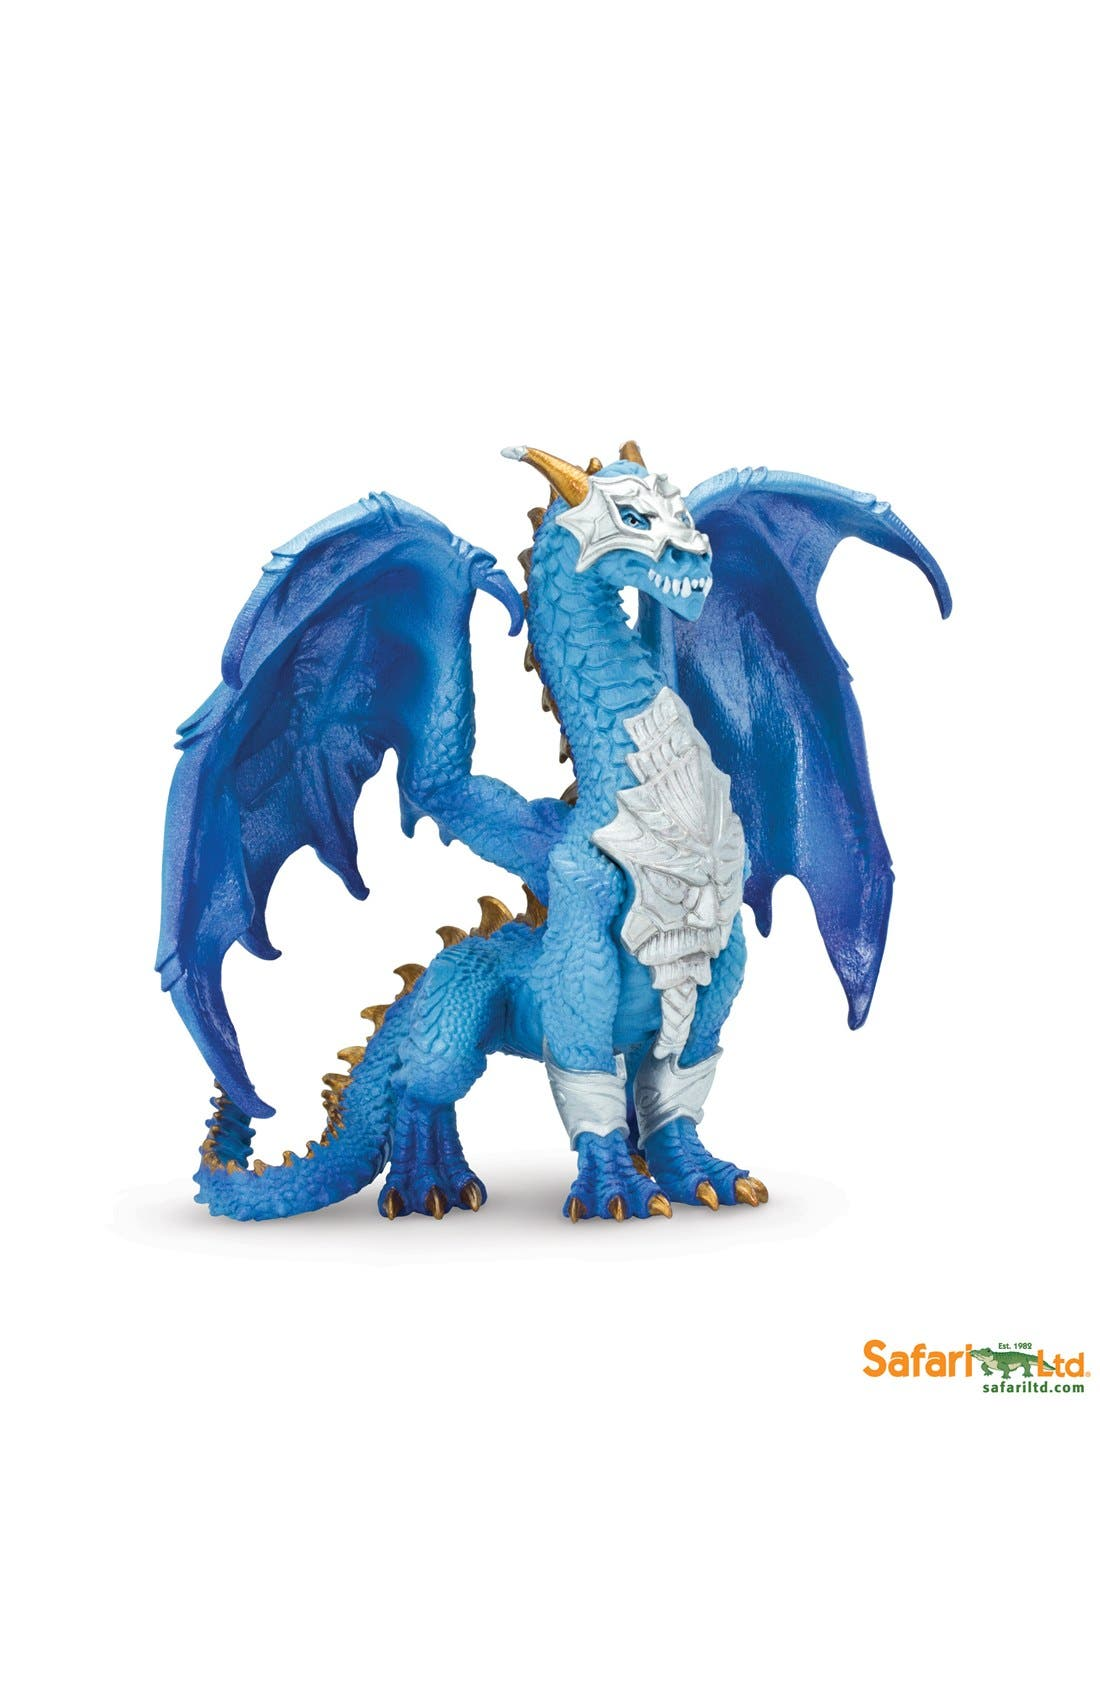 SAFARI LTD. Guardian Dragon Figurine, Main, color, 960